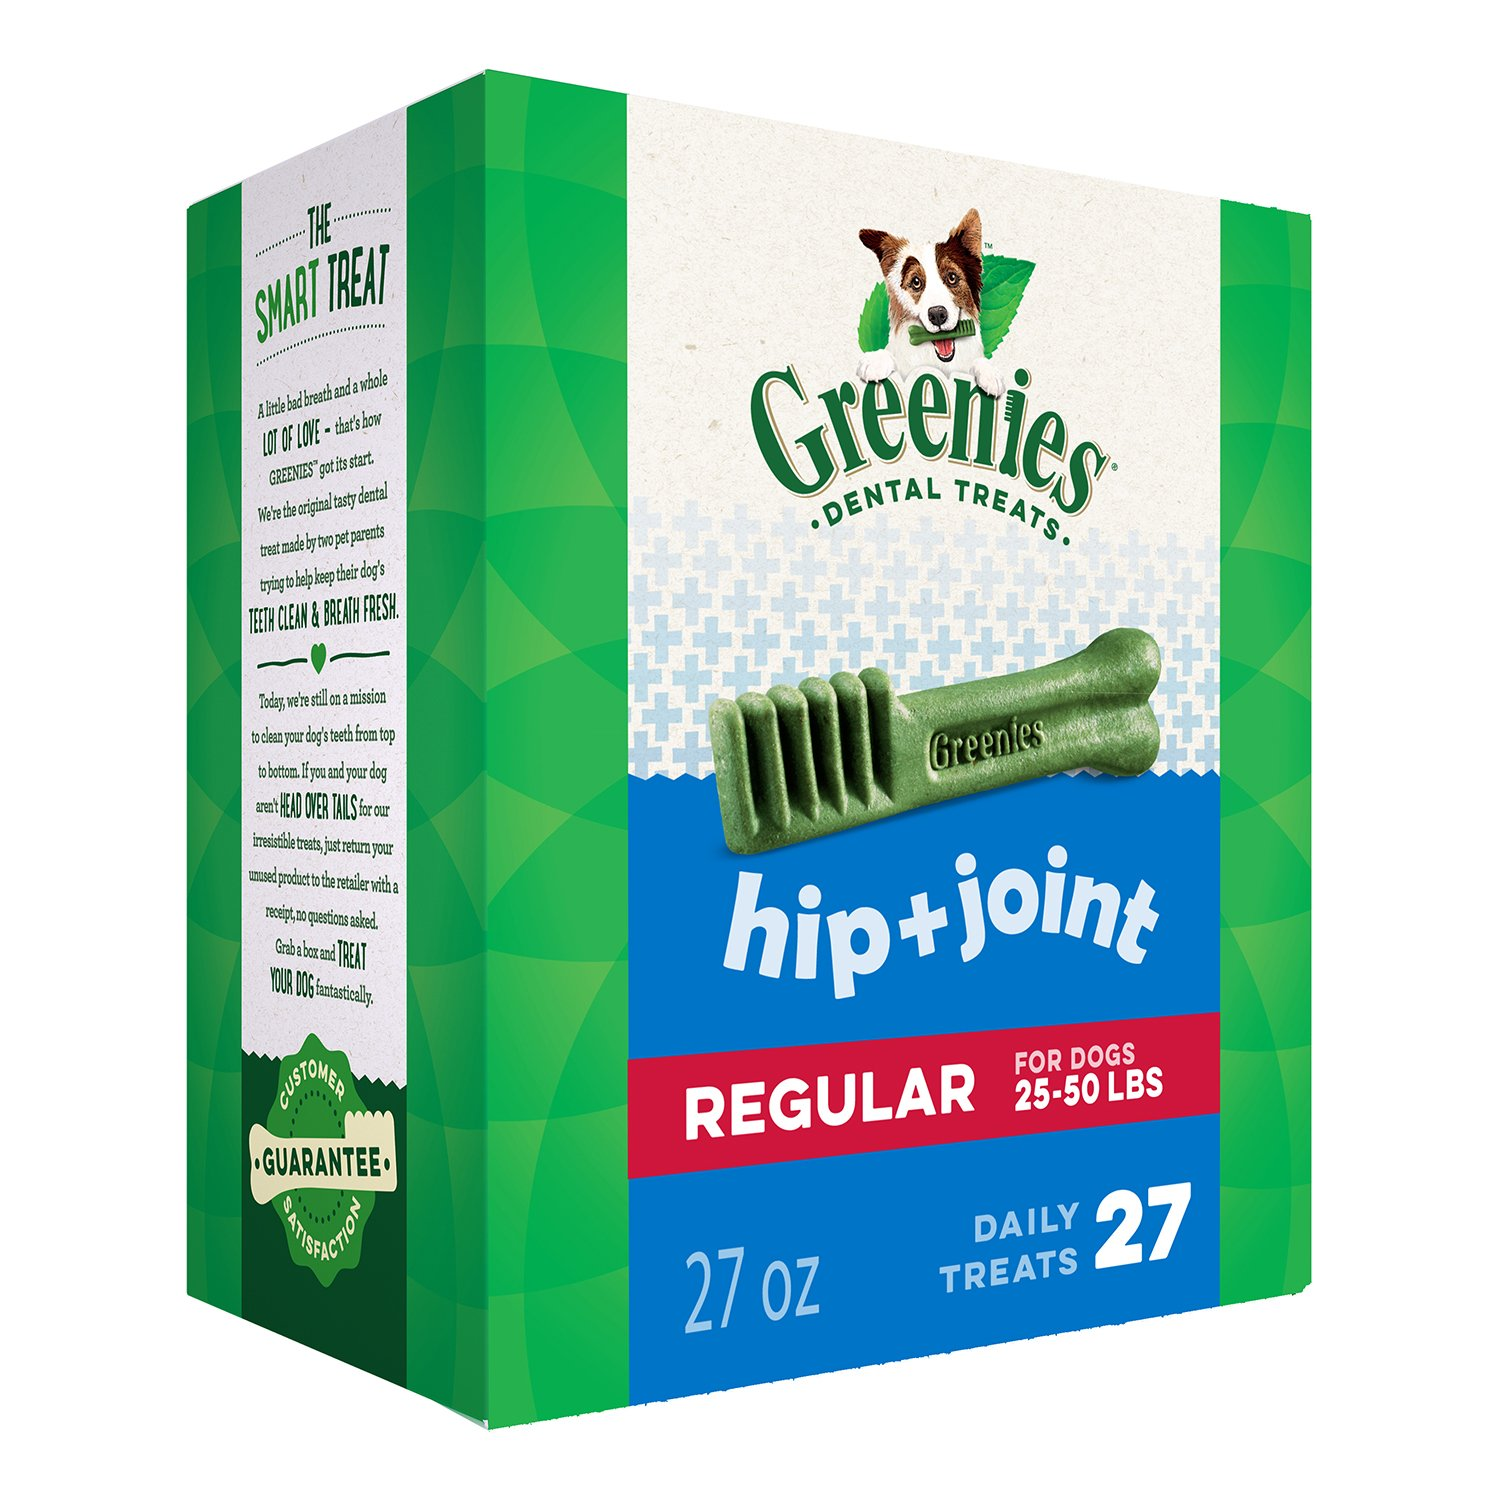 DISCONTINUED: GREENIES Hip and Joint Regular Size Dental Dog Chews - 27 Ounces 27 Treats